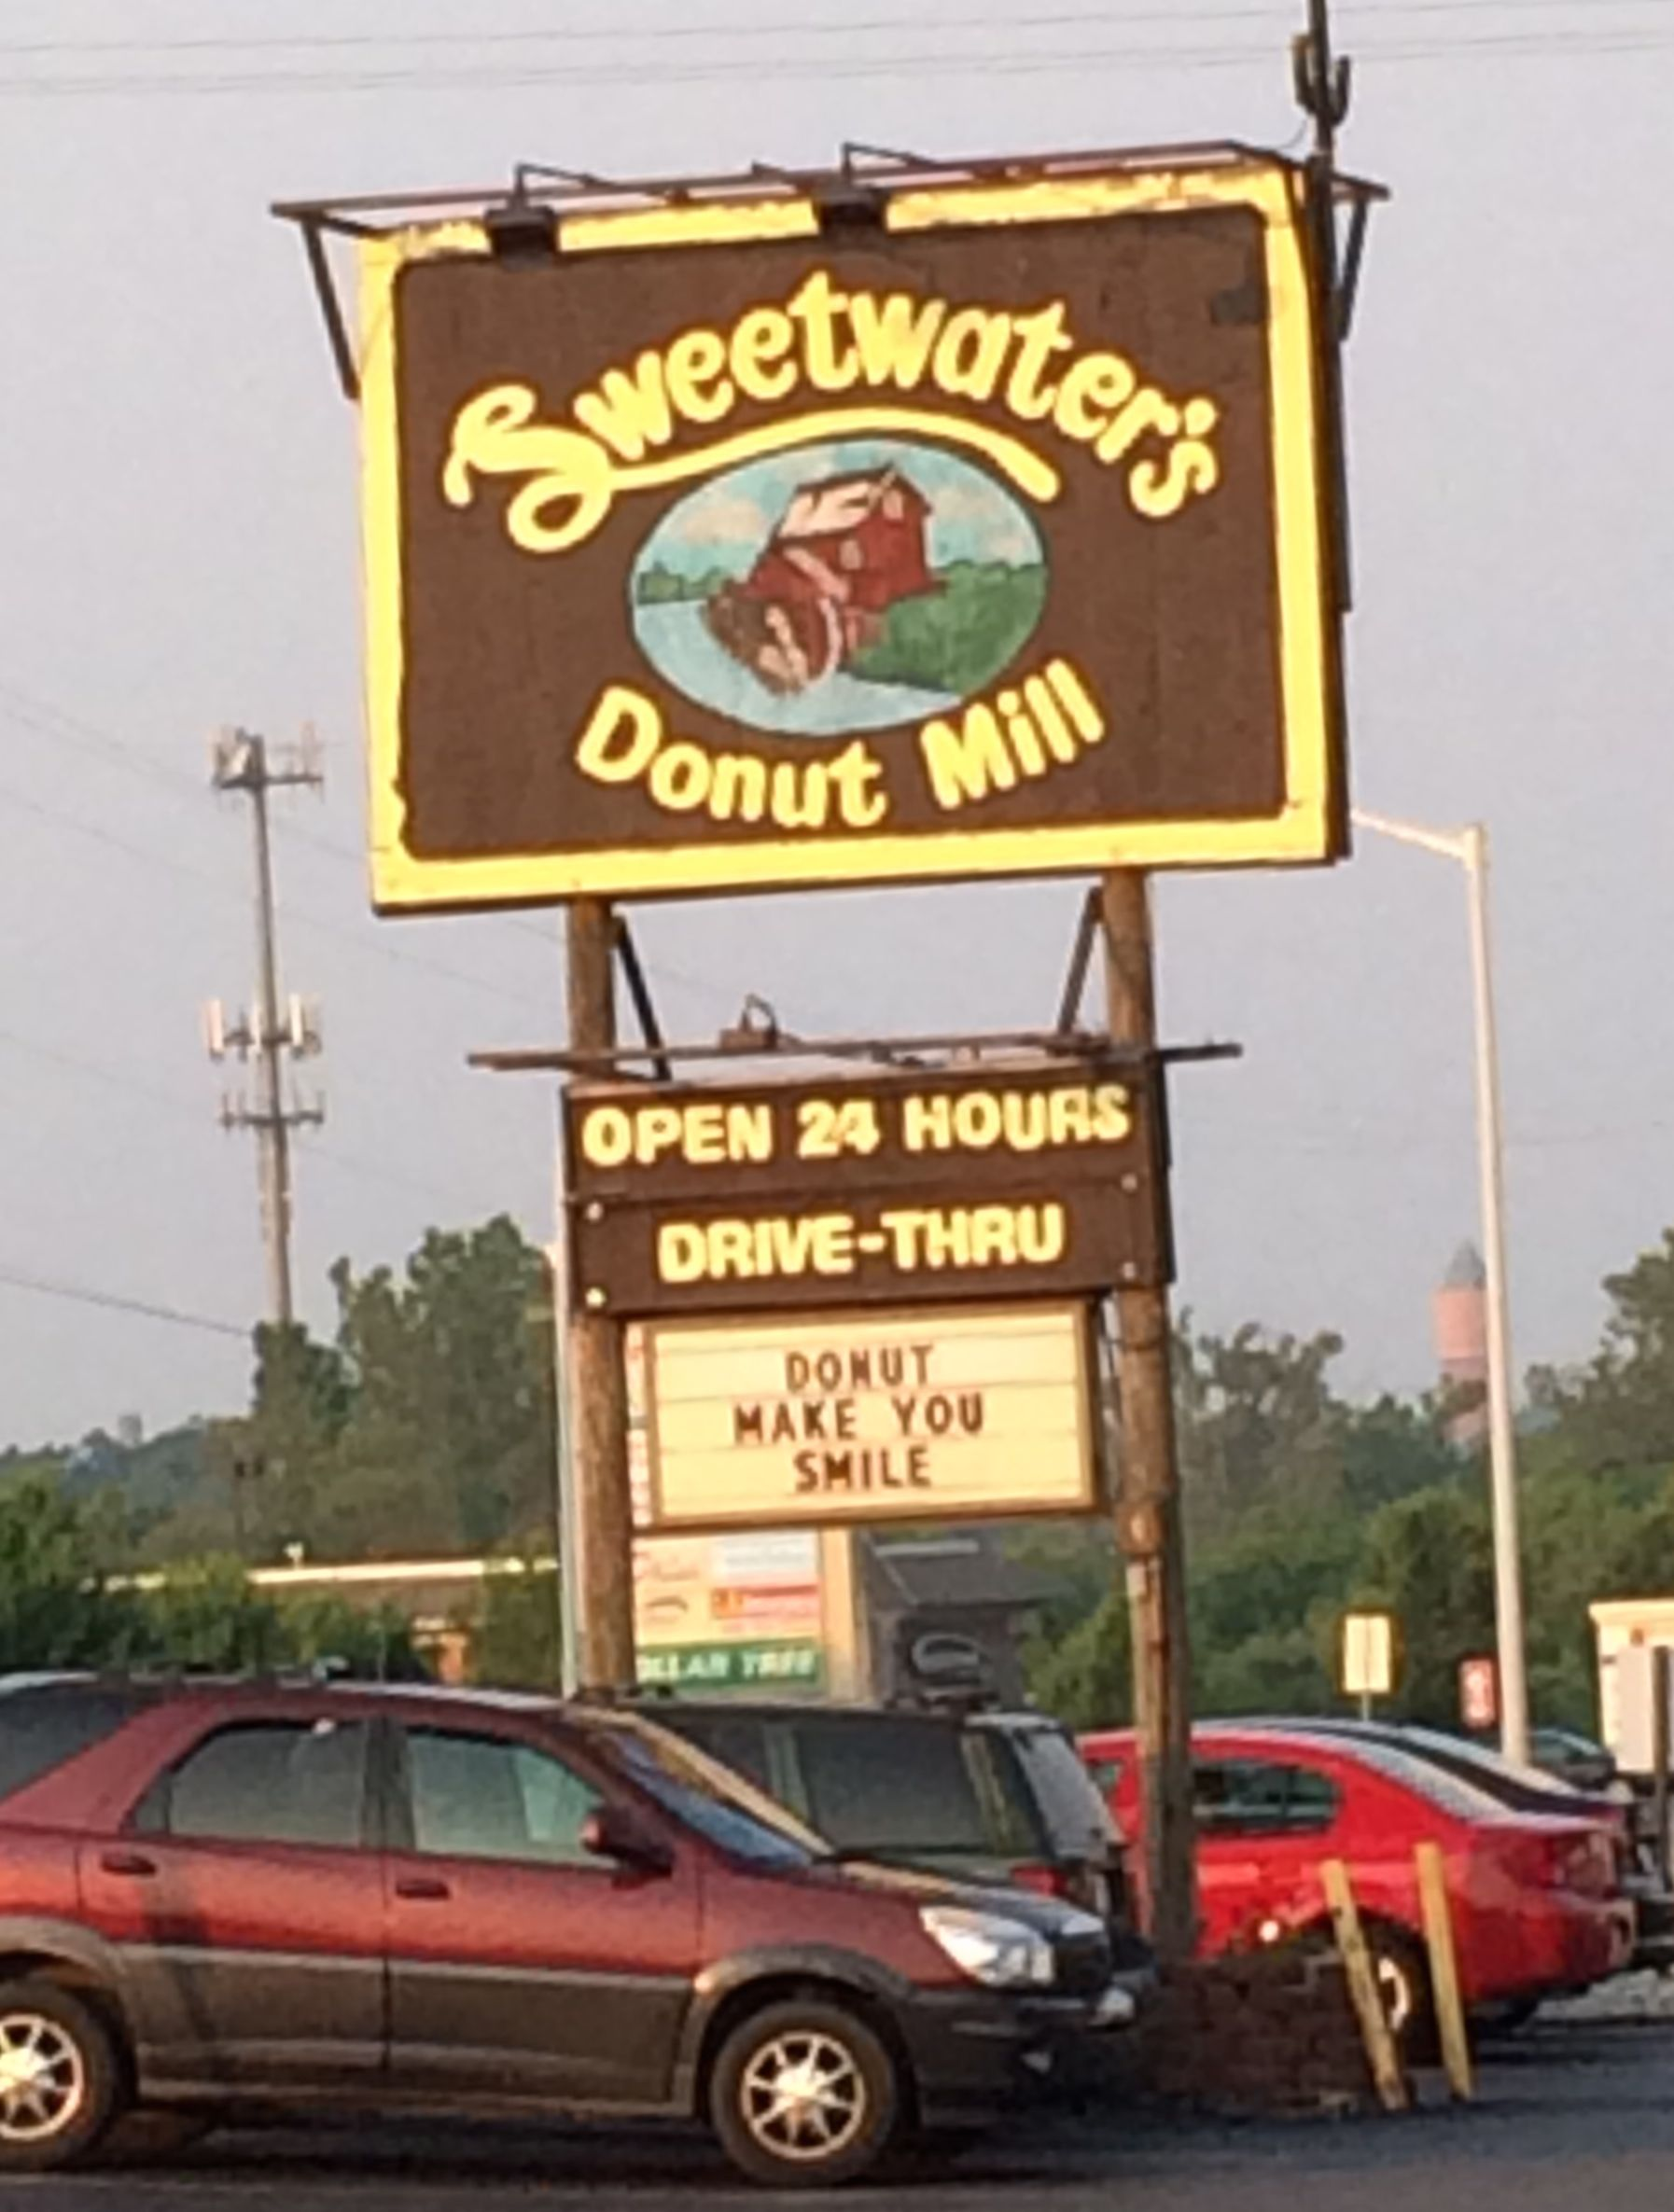 Sweetwater's Donut Mill - one of the best in the USA!